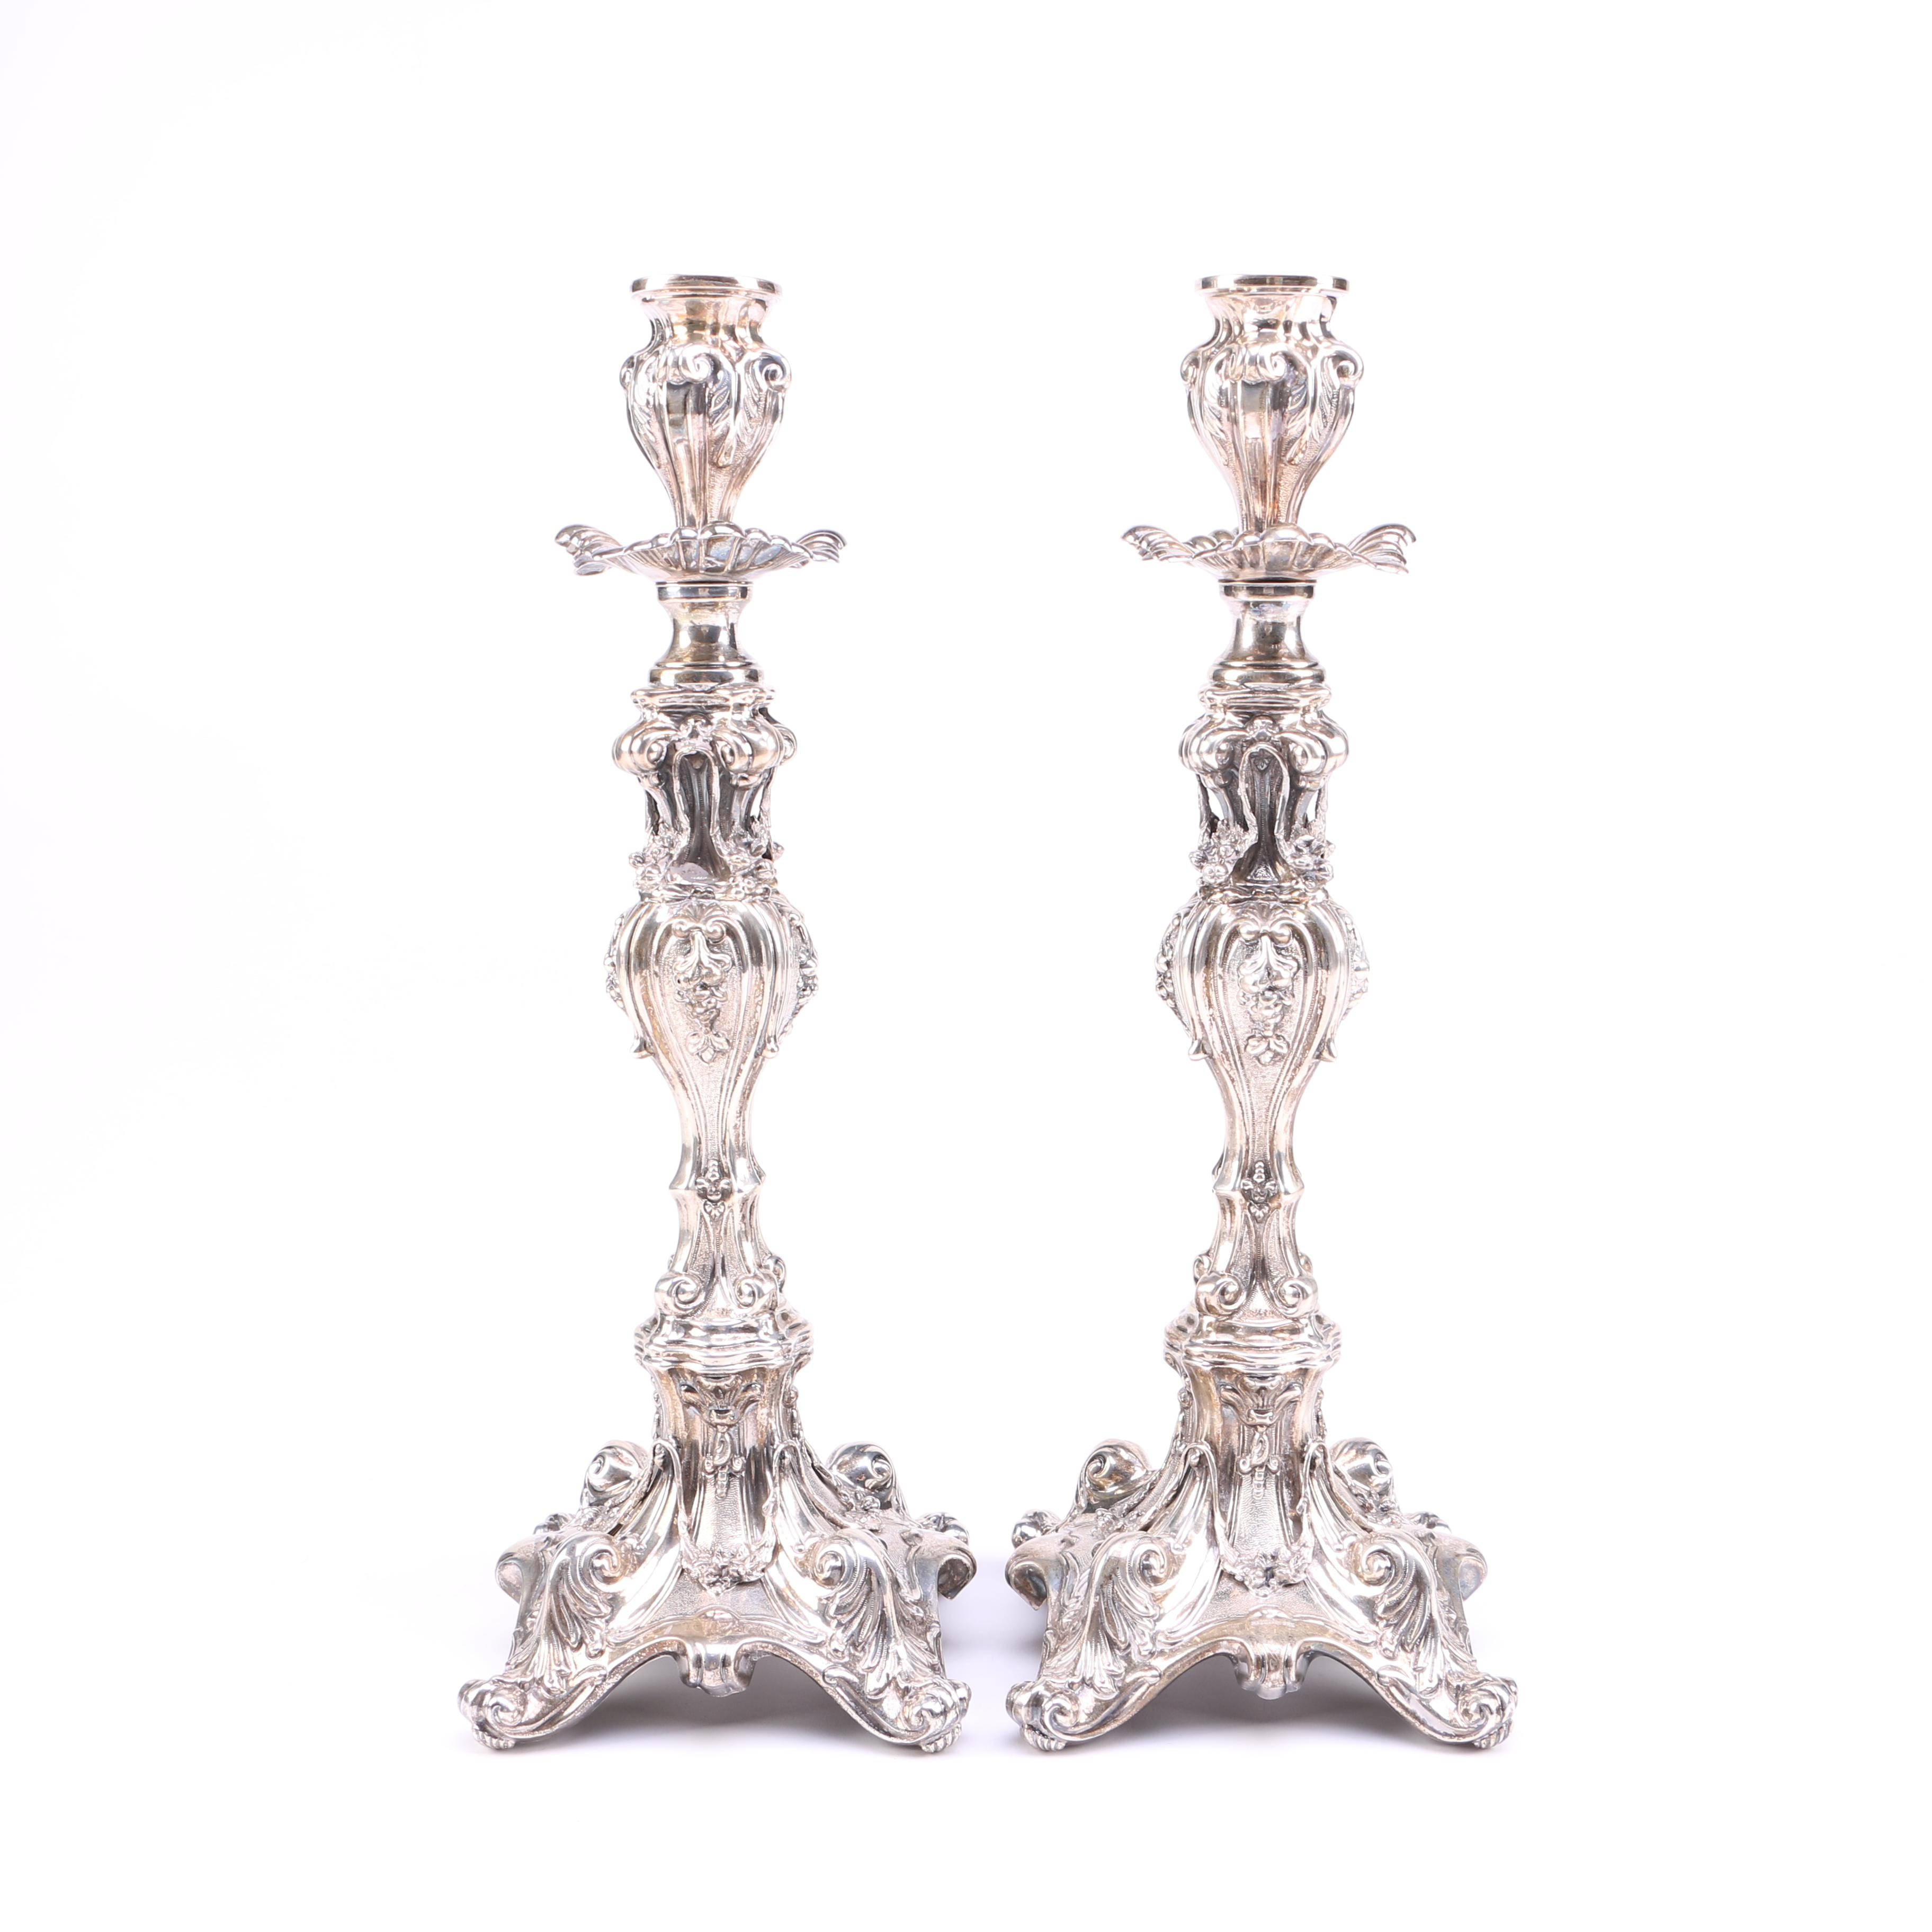 HaZorfim Weighted Sterling Silver Candlestick Holders